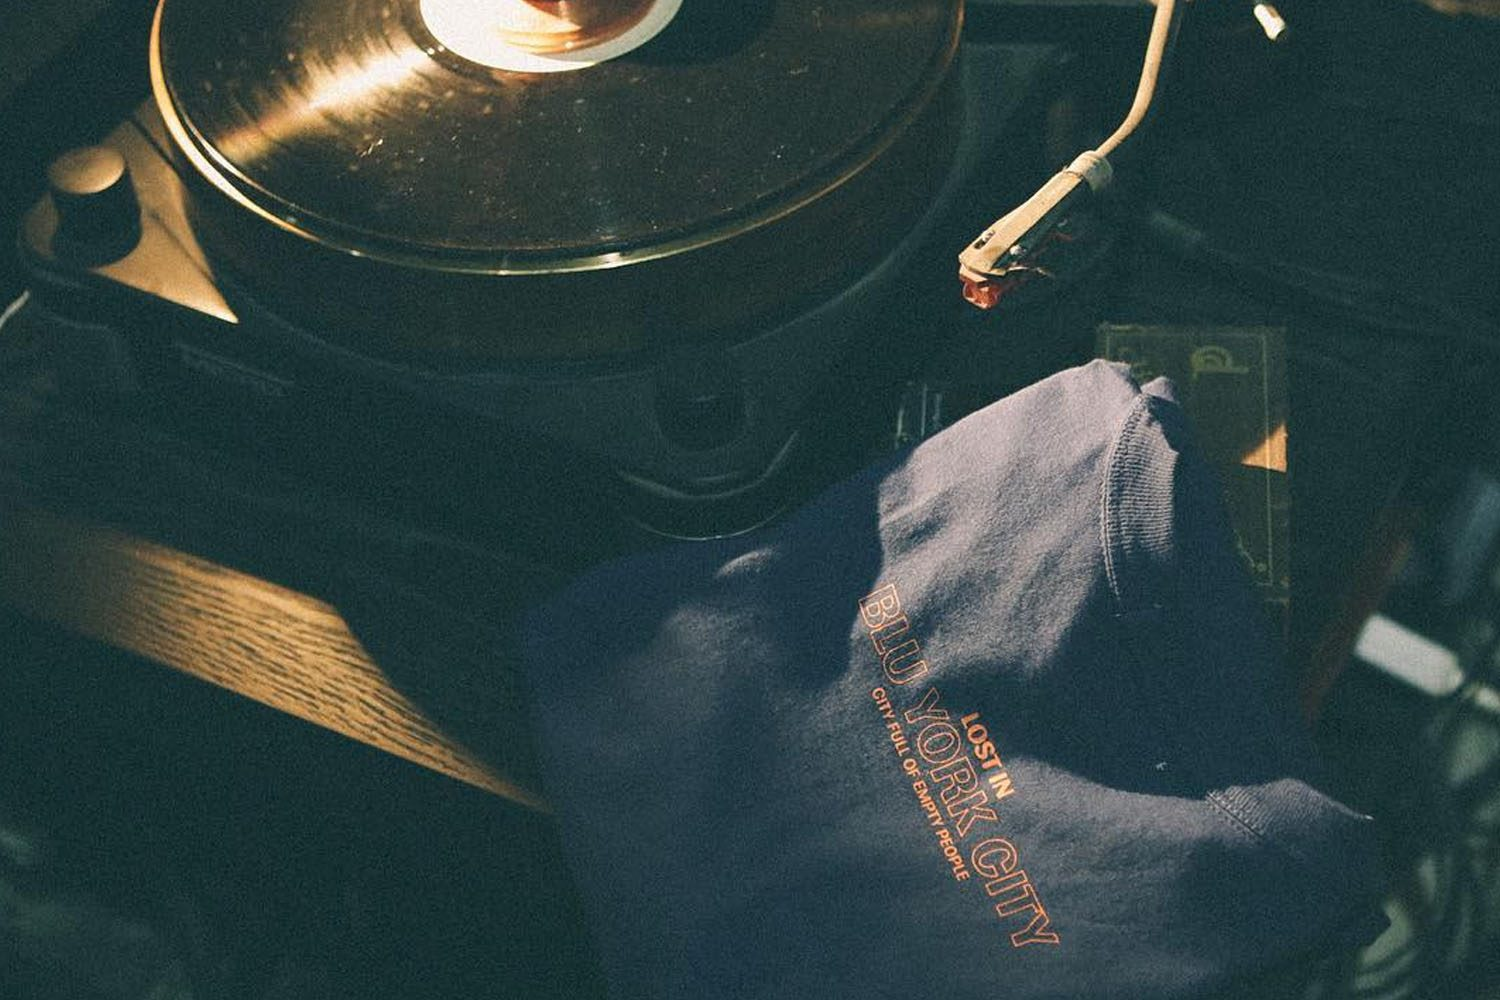 BLUESVILLE THE MINT SESSION DROP 1 1